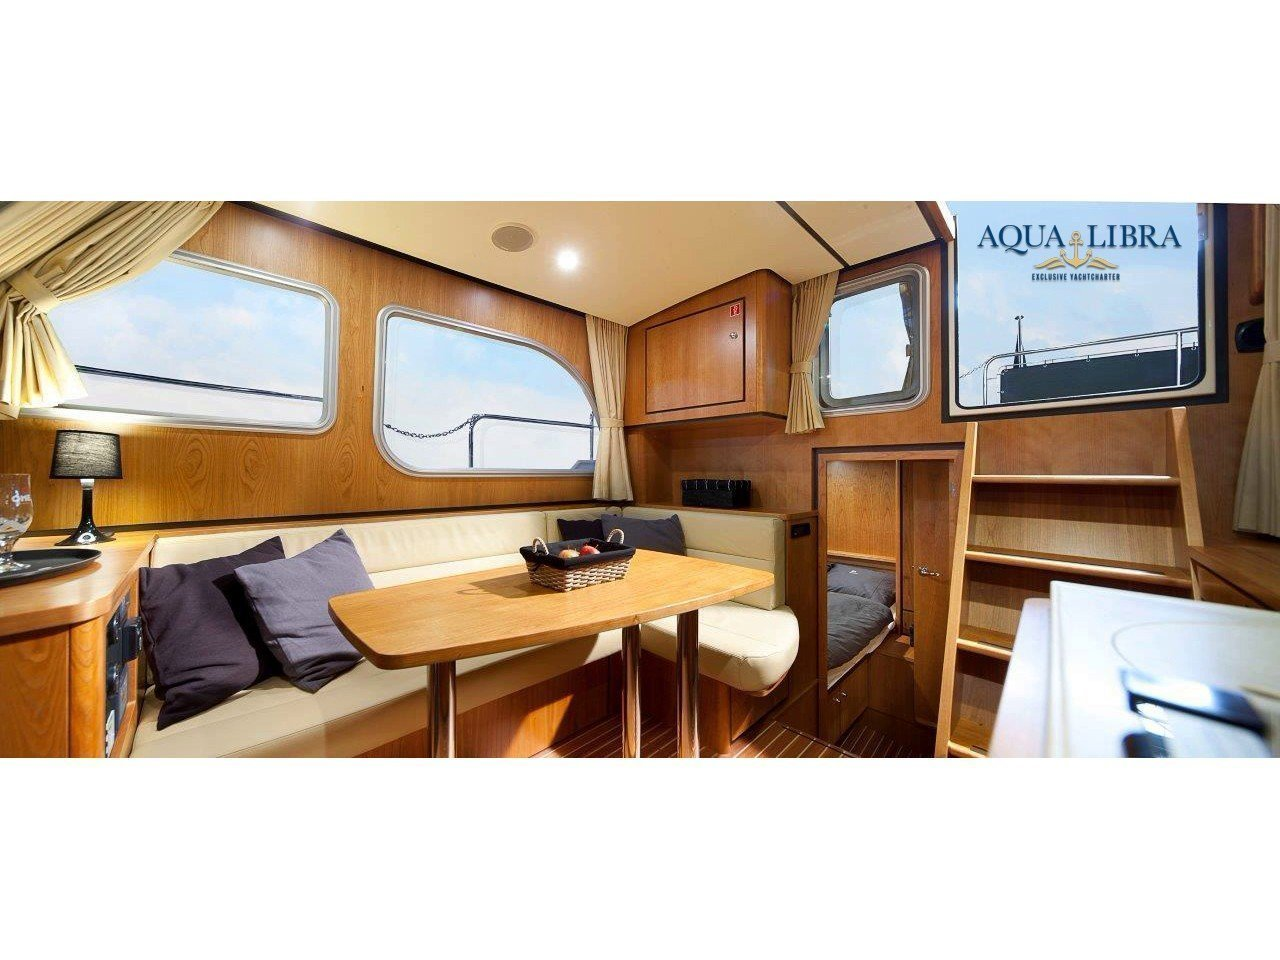 Linssen GS 30.9 AC (Luna Louise) Interior image - 2